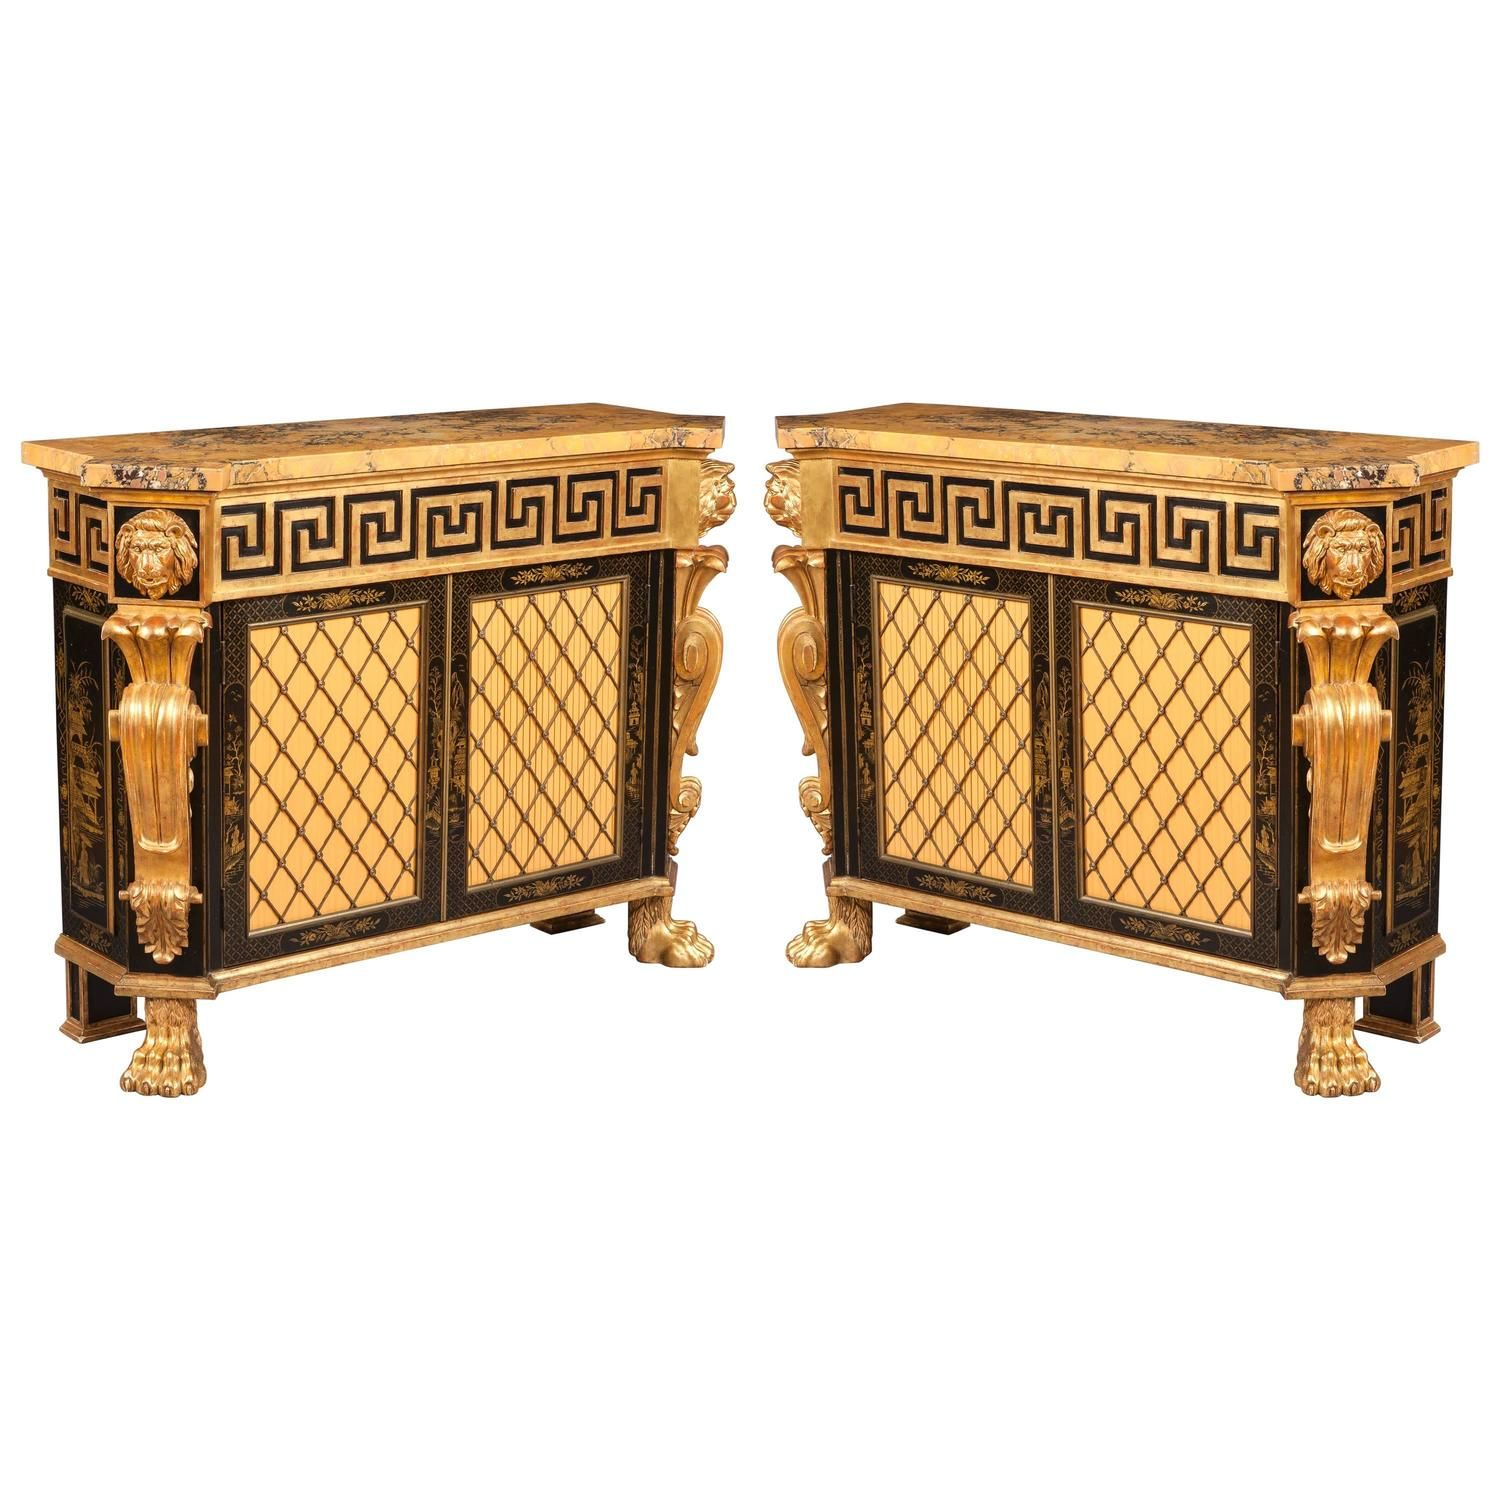 Pair of Highly Decorative Antique Cabinets in the Regency Manner, ca. 1900  £45,000